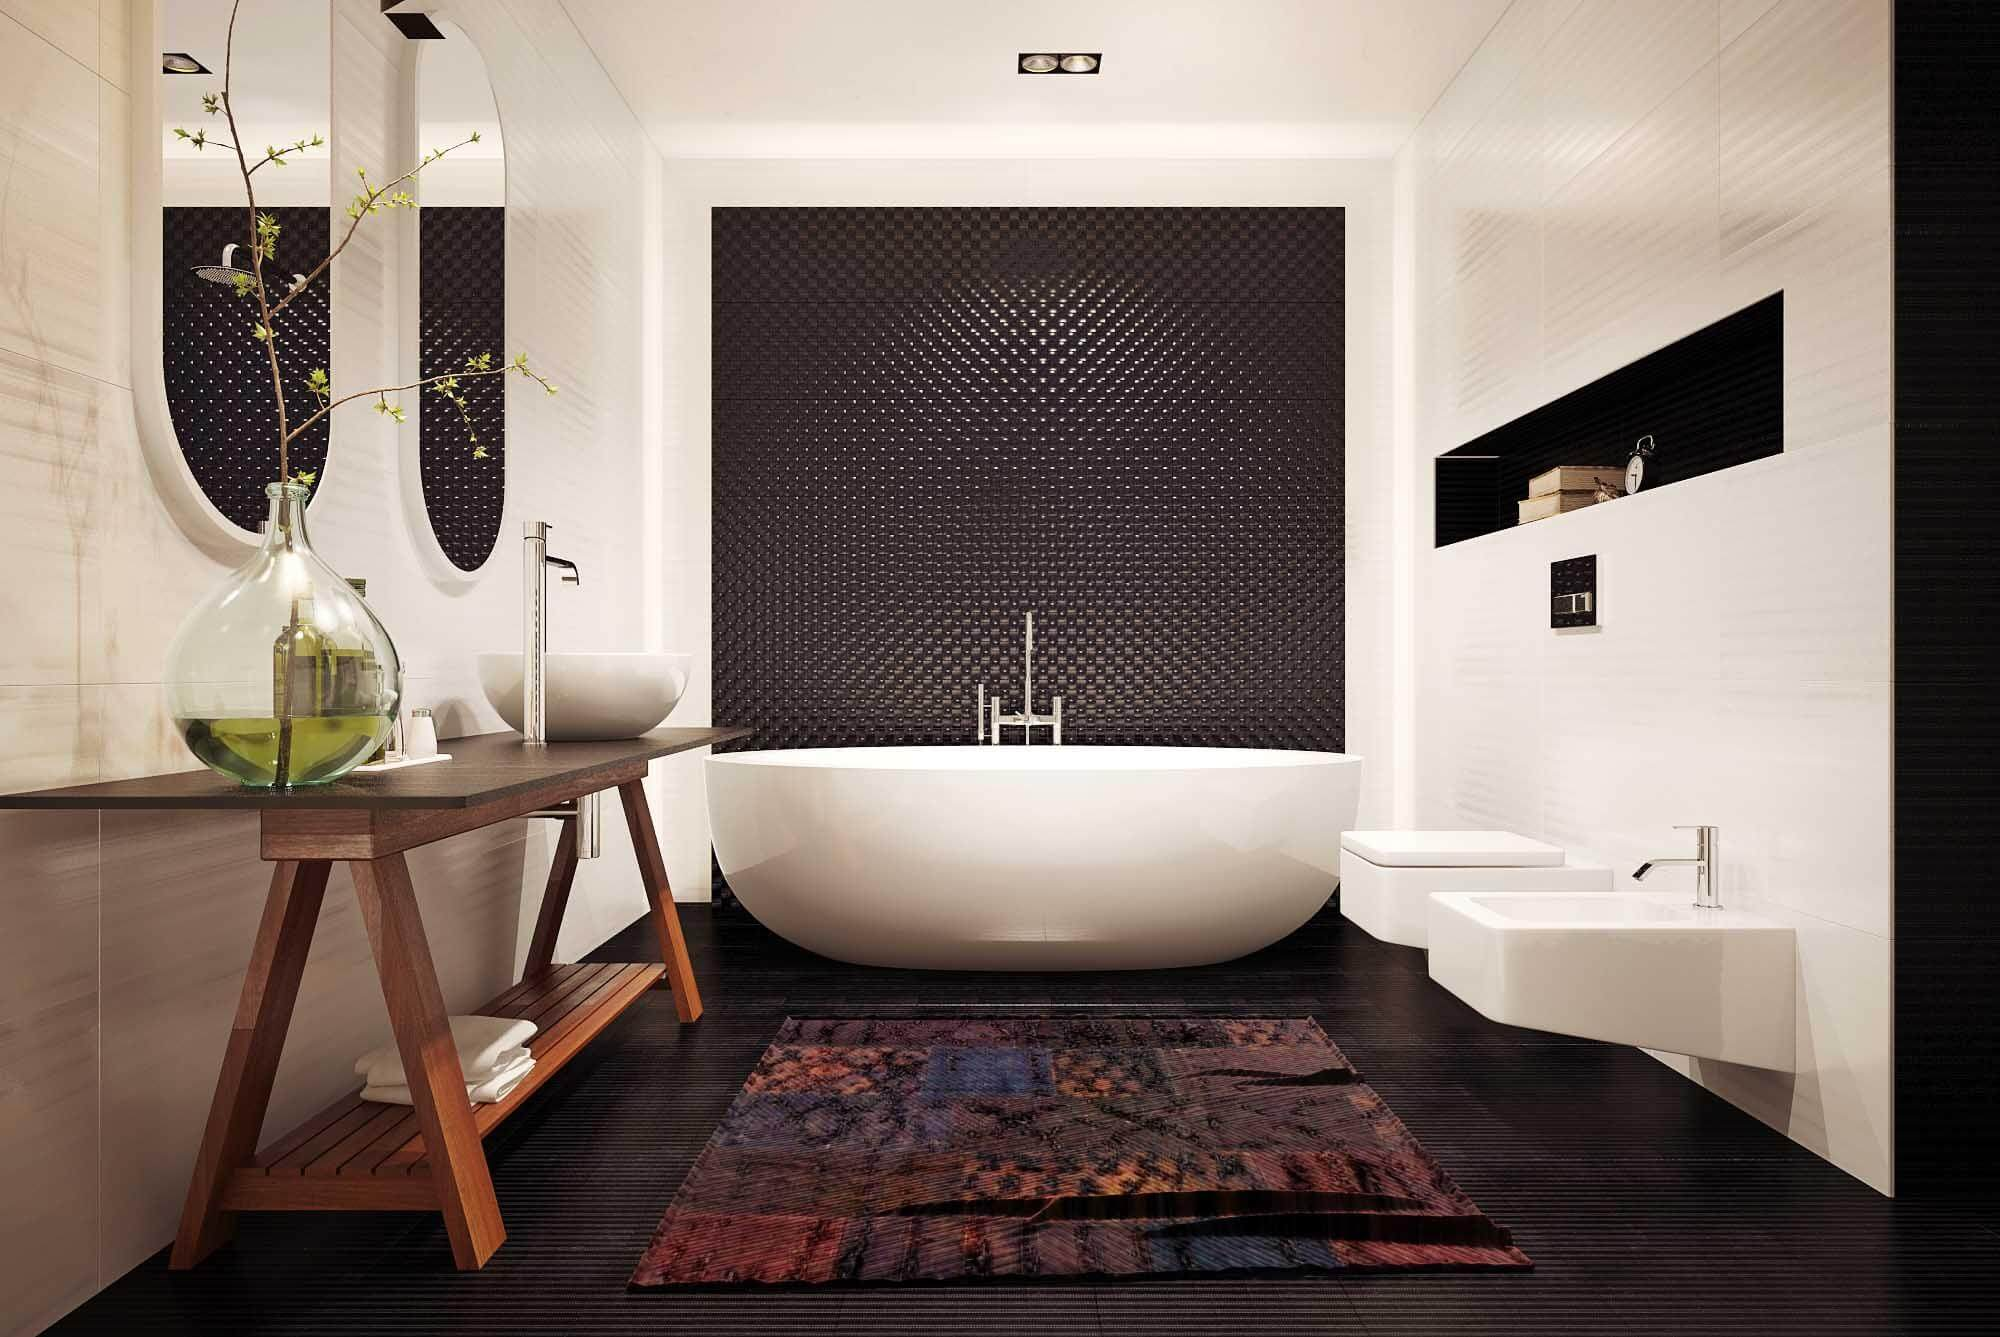 Bathroom Design Trends 2020 Harmonious And Functional